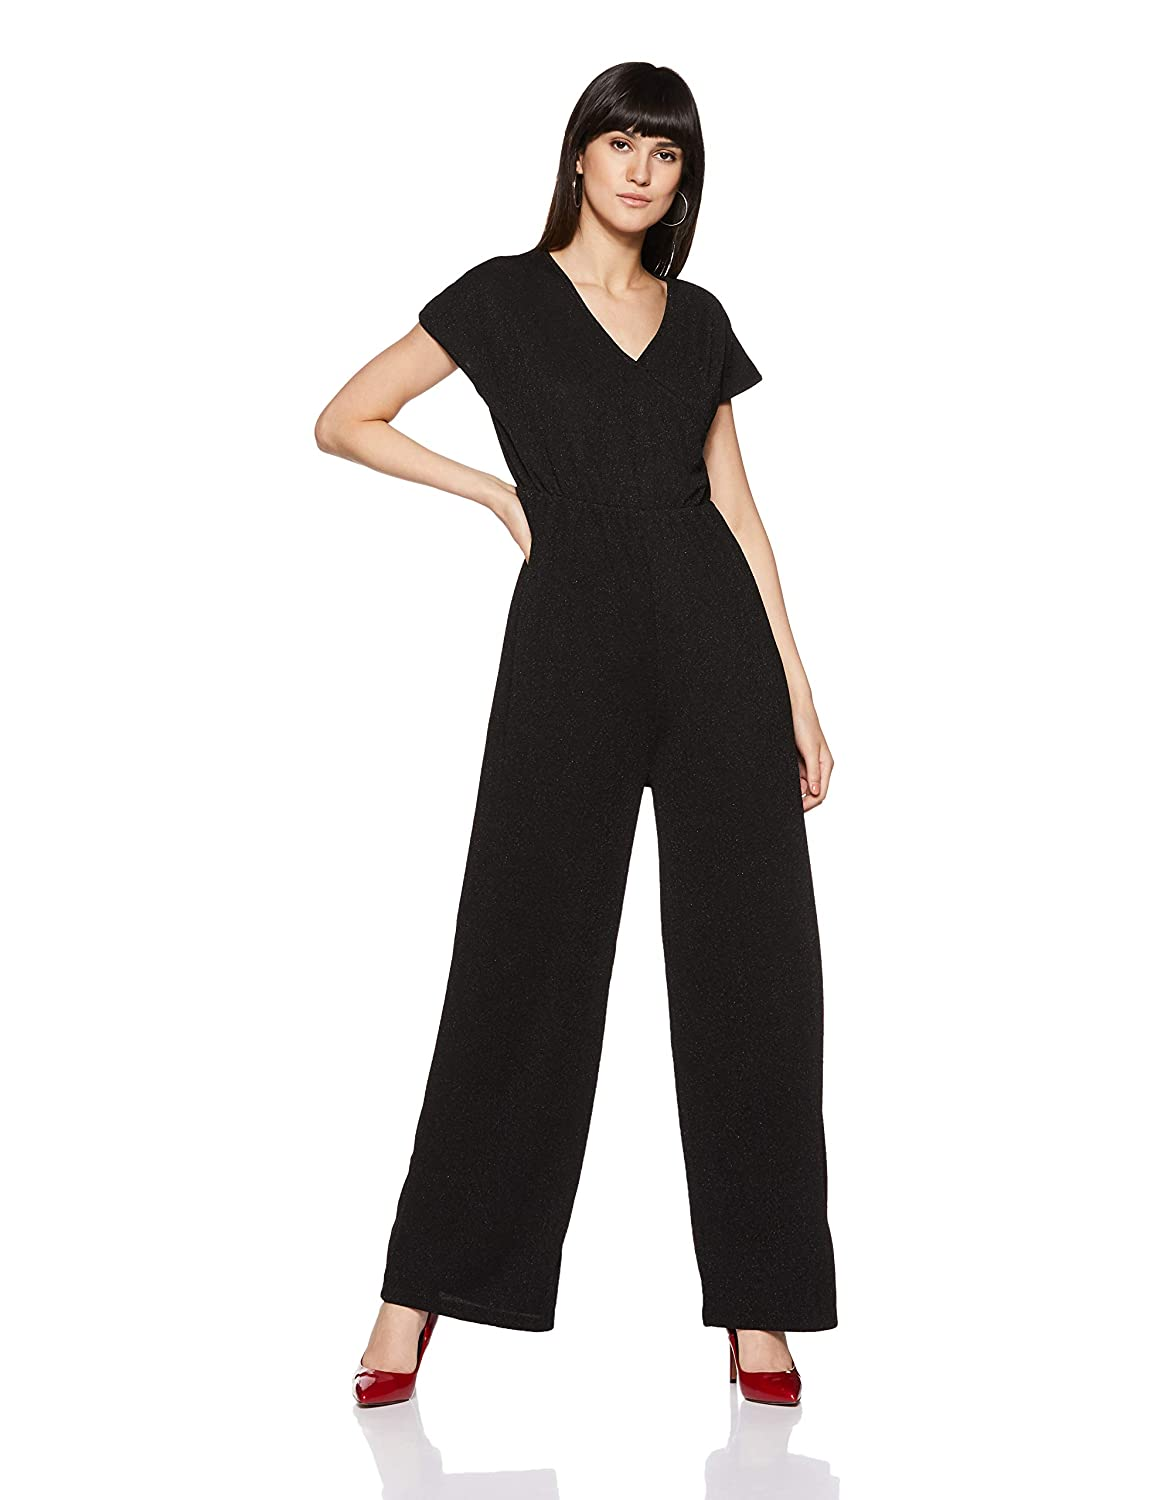 5586f205985 Annabelle By Pantaloons Women s N A N A Jumpsuit (110035967 Black XS)   Amazon.in  Clothing   Accessories